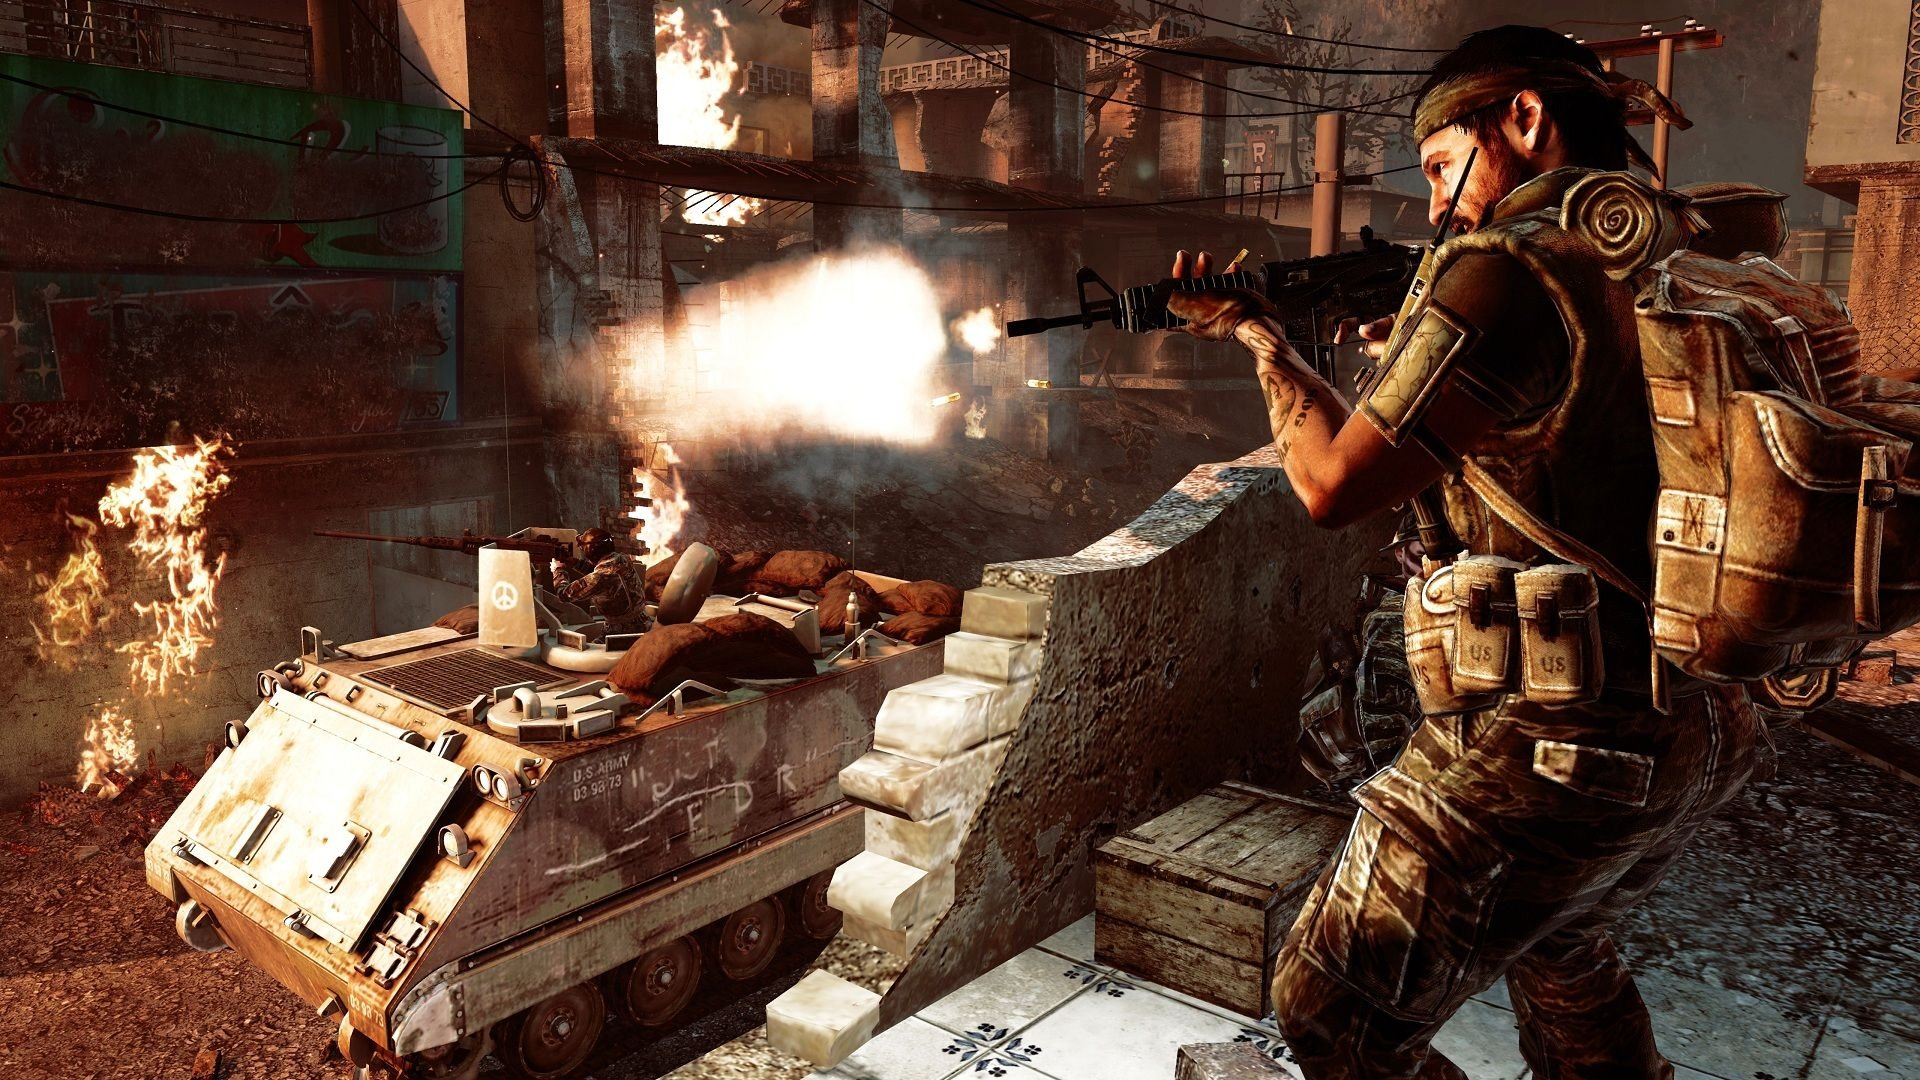 games duty of pc download call free